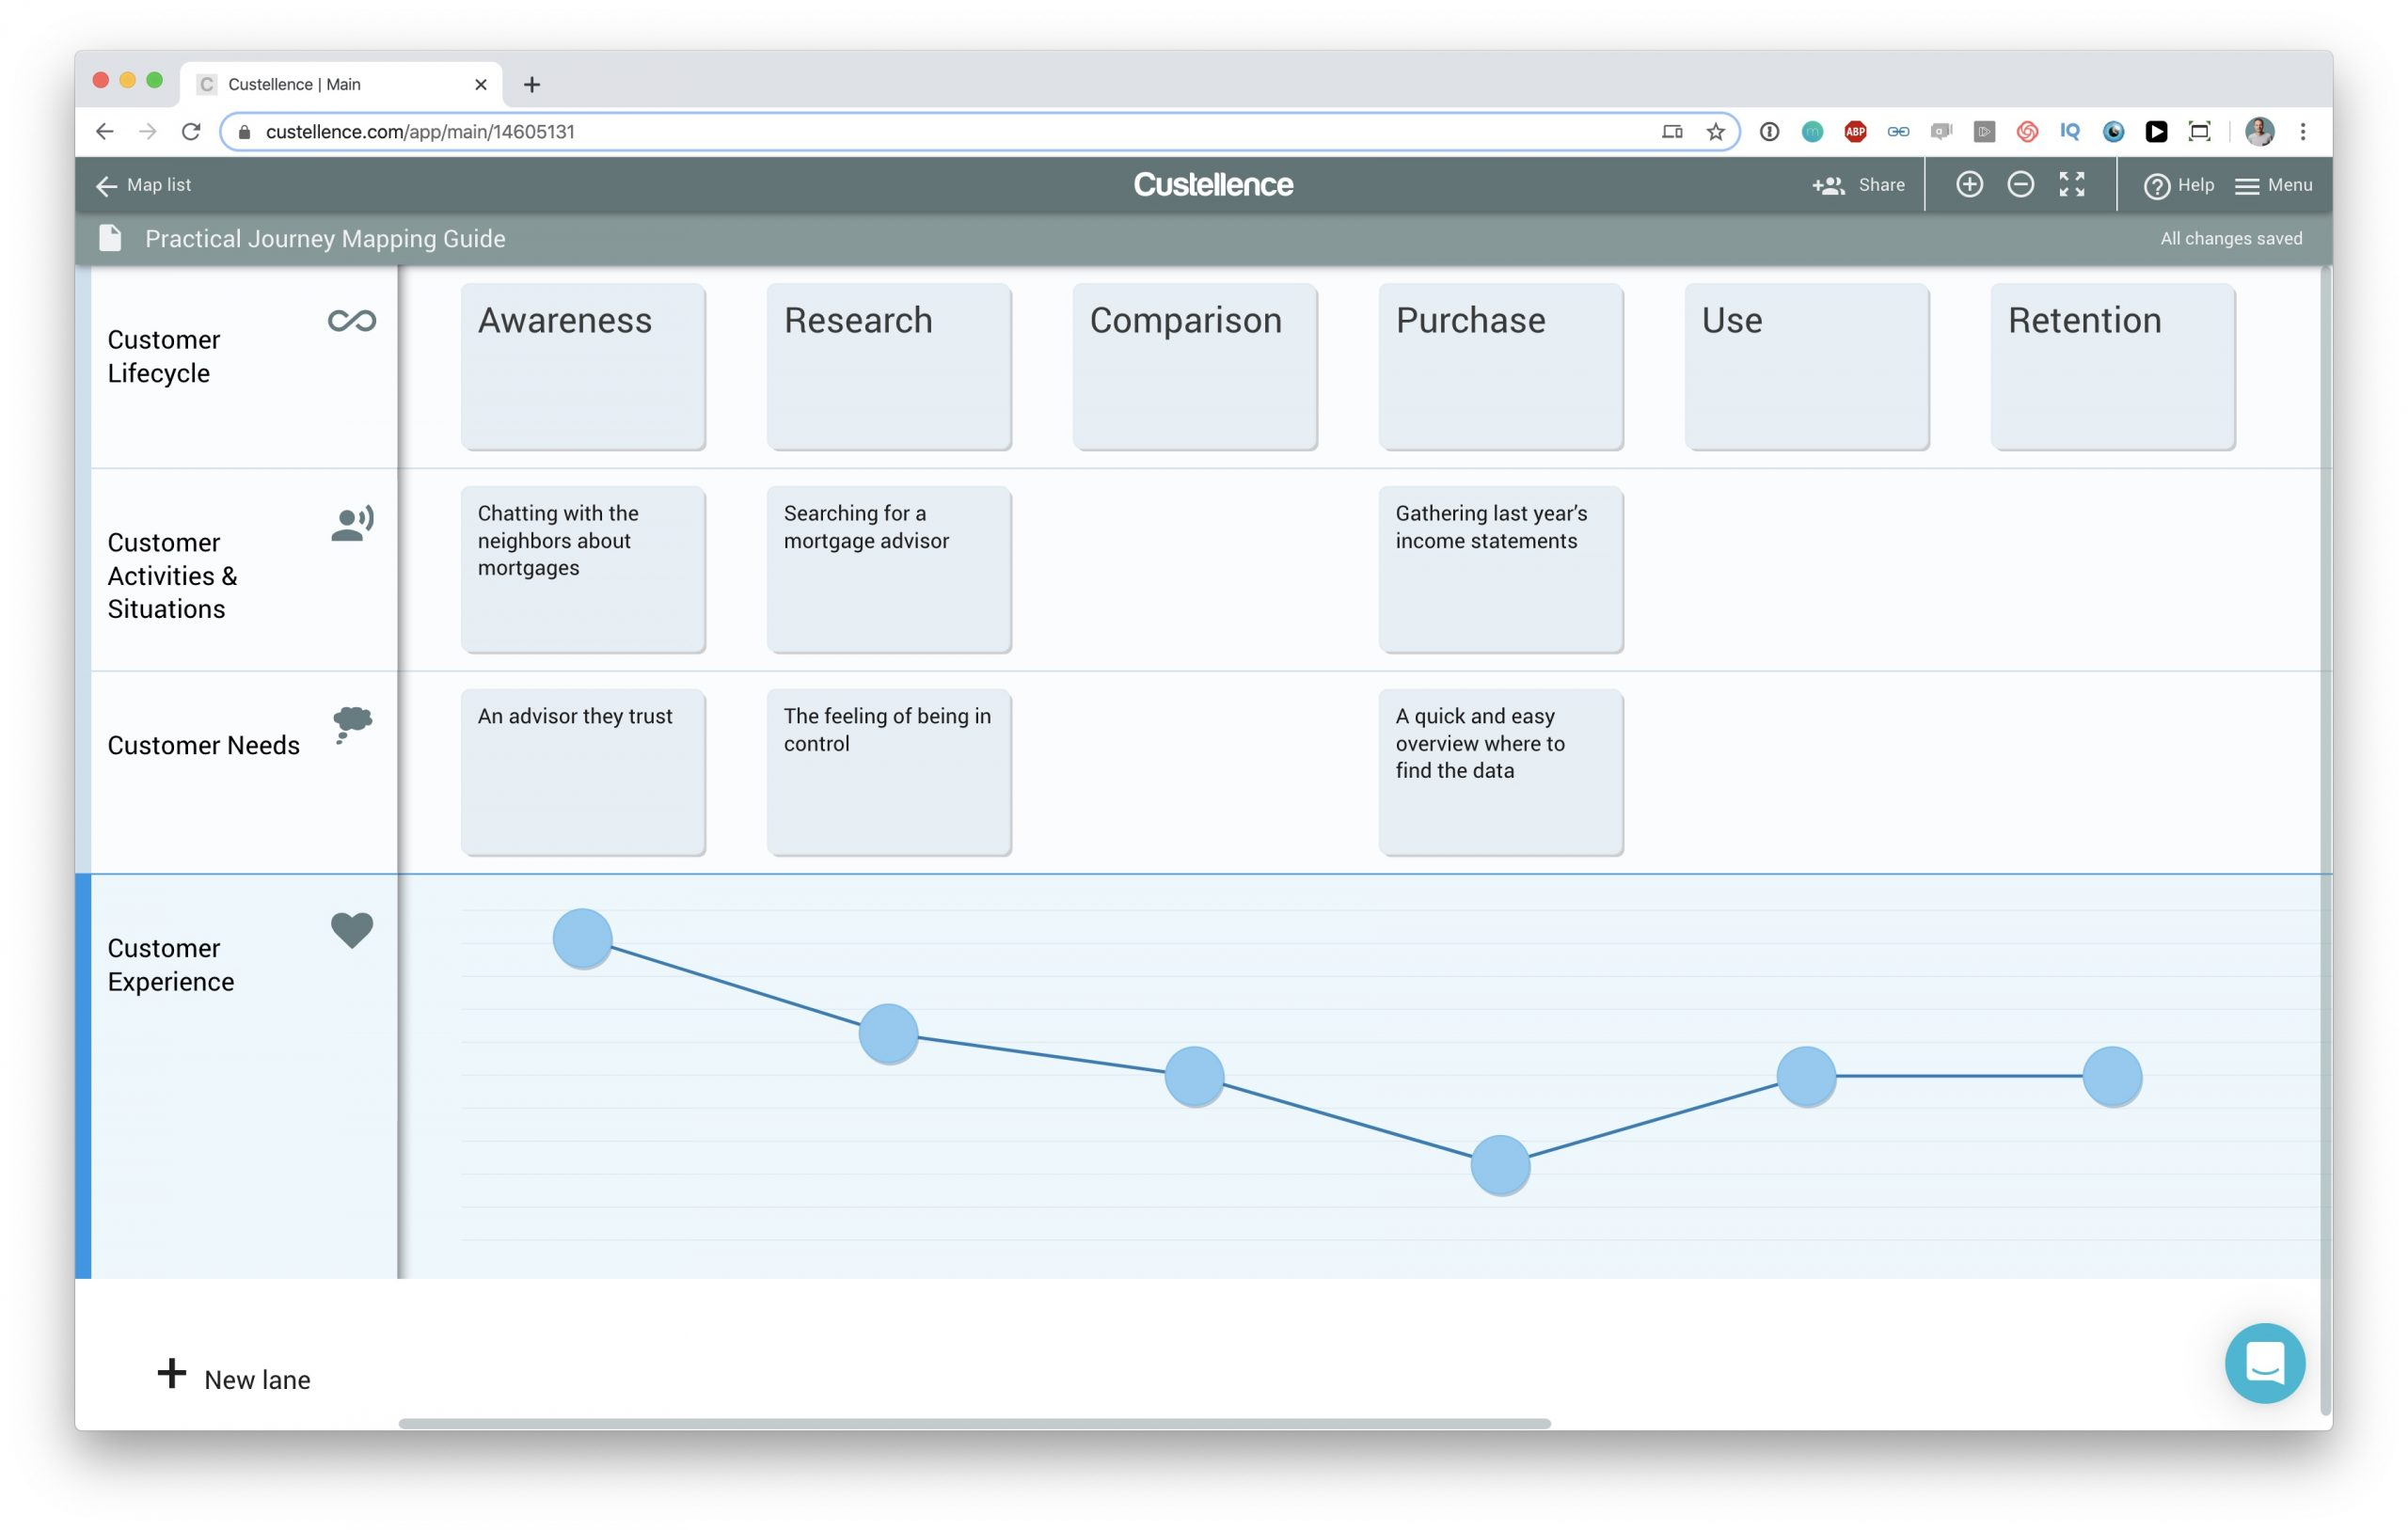 Customer Experience in a Customer Journey Map